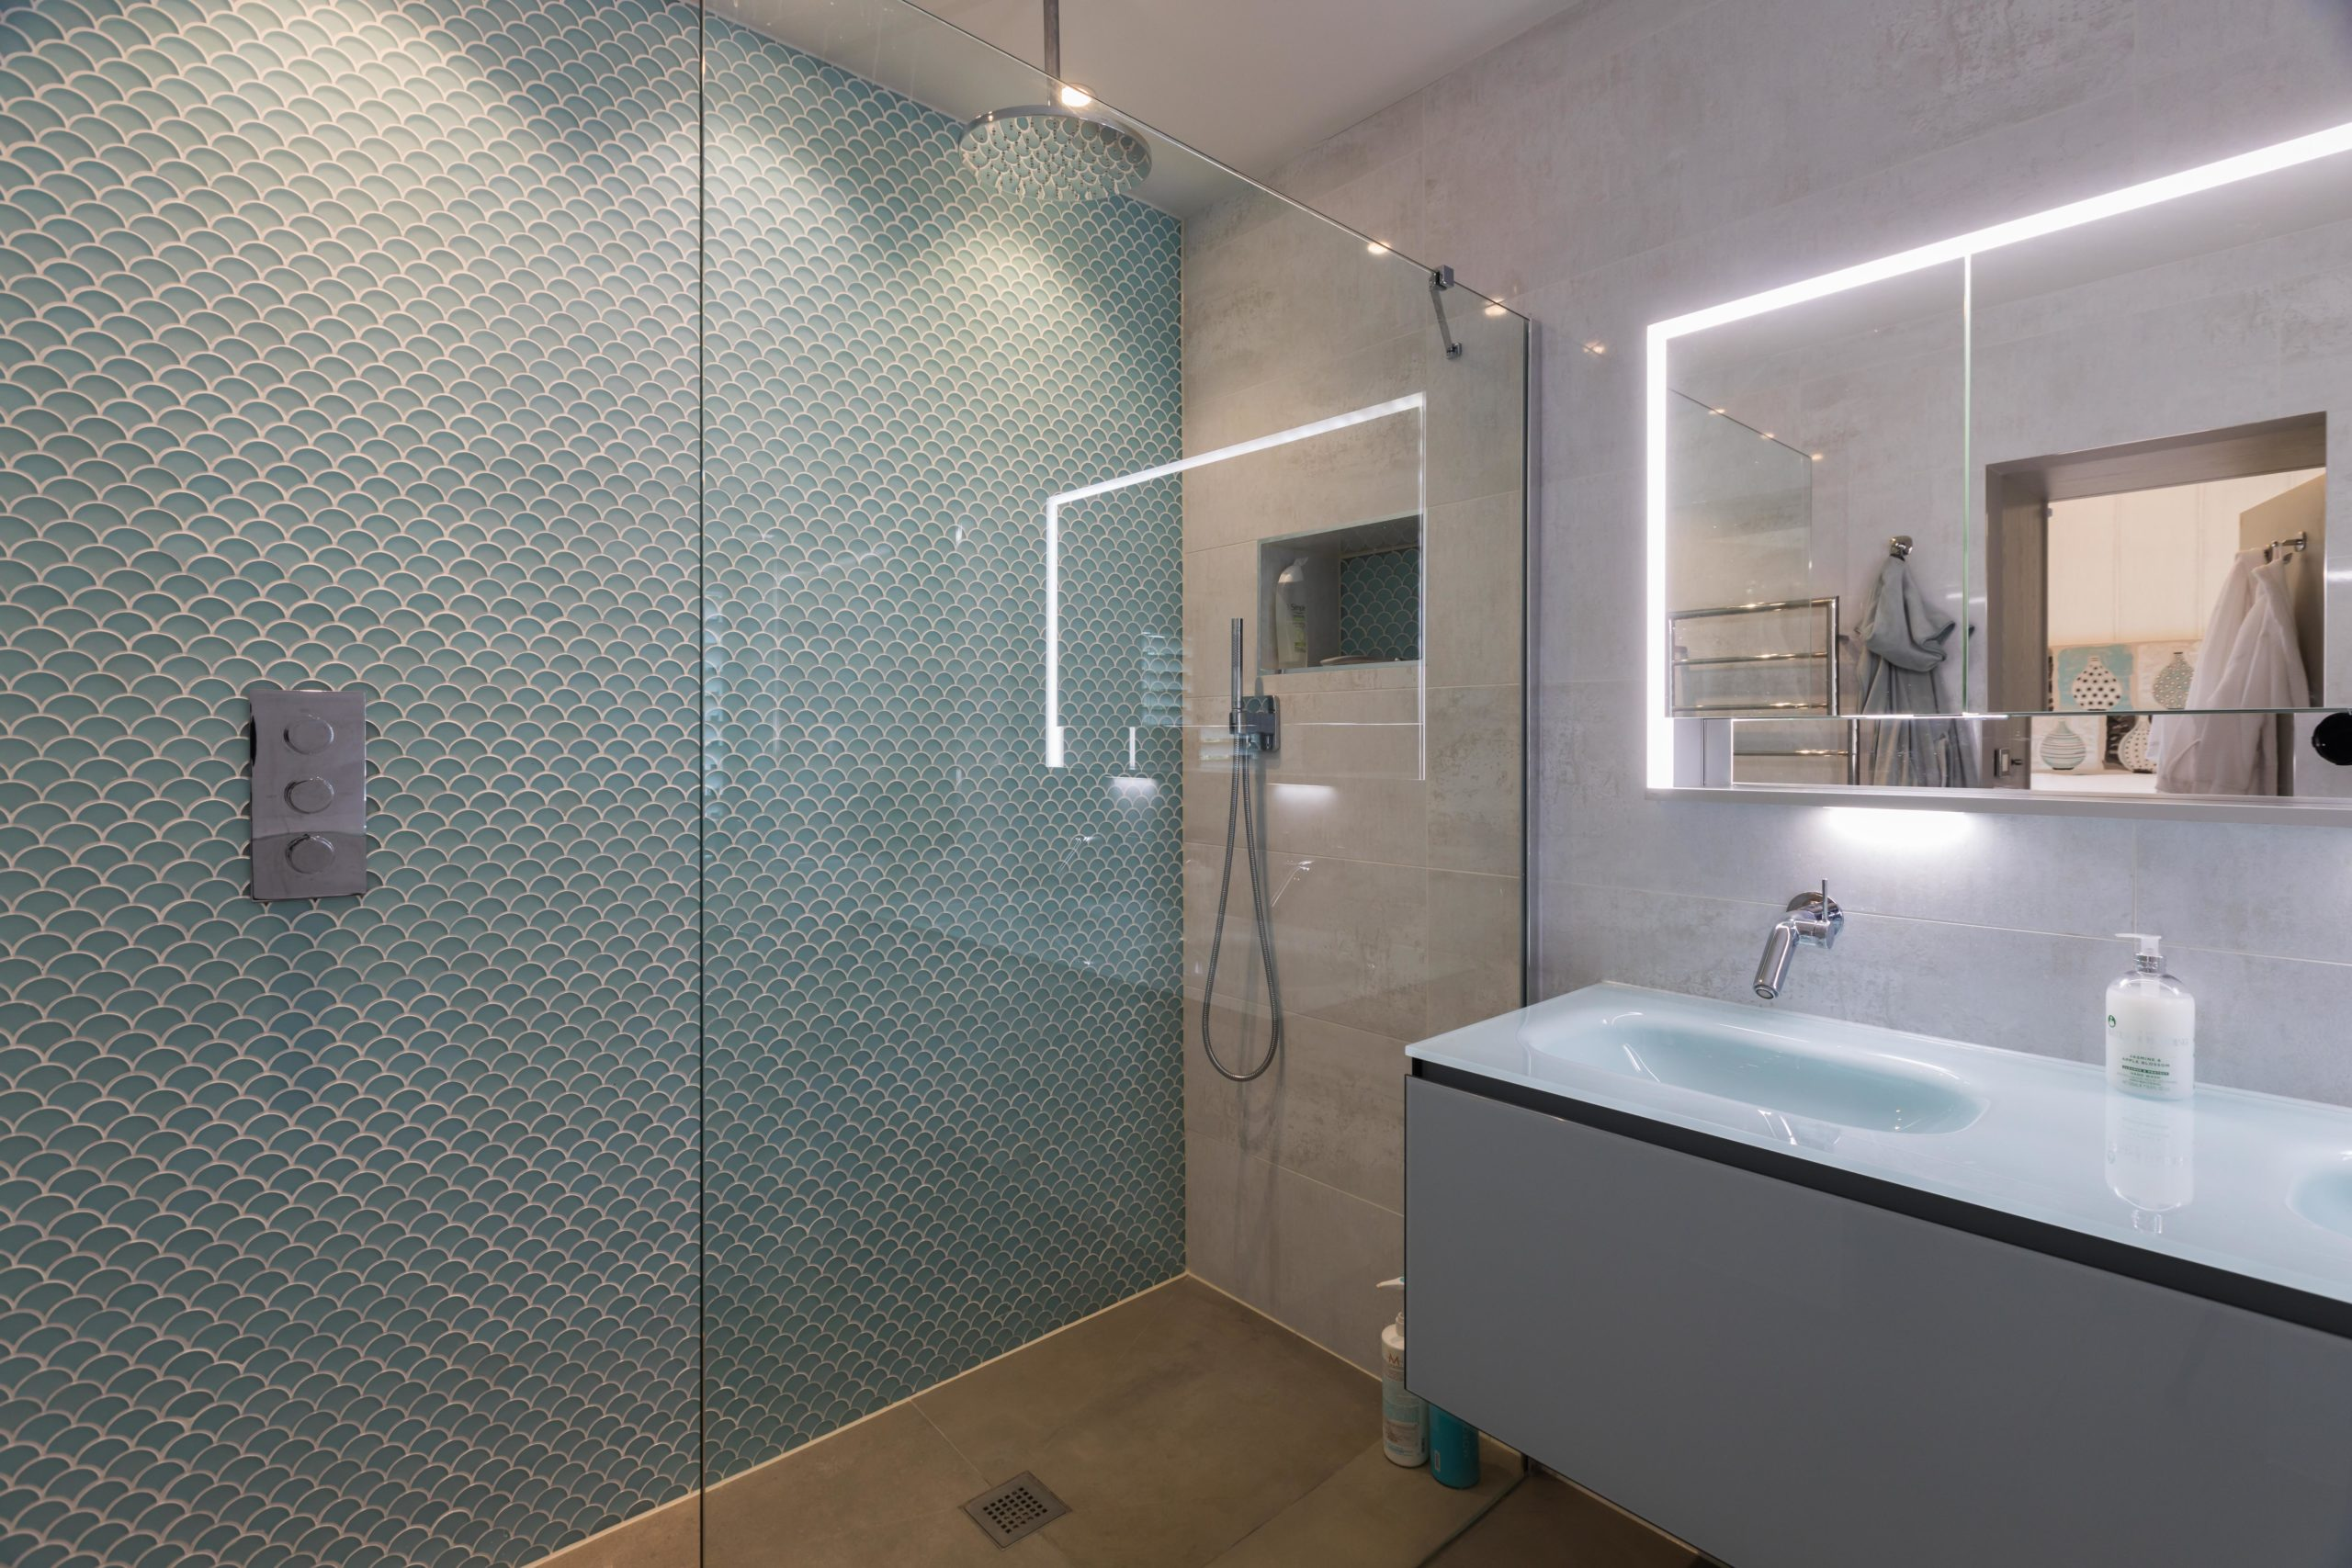 Scallop mosaic tiled feature wall in en-suite wet room